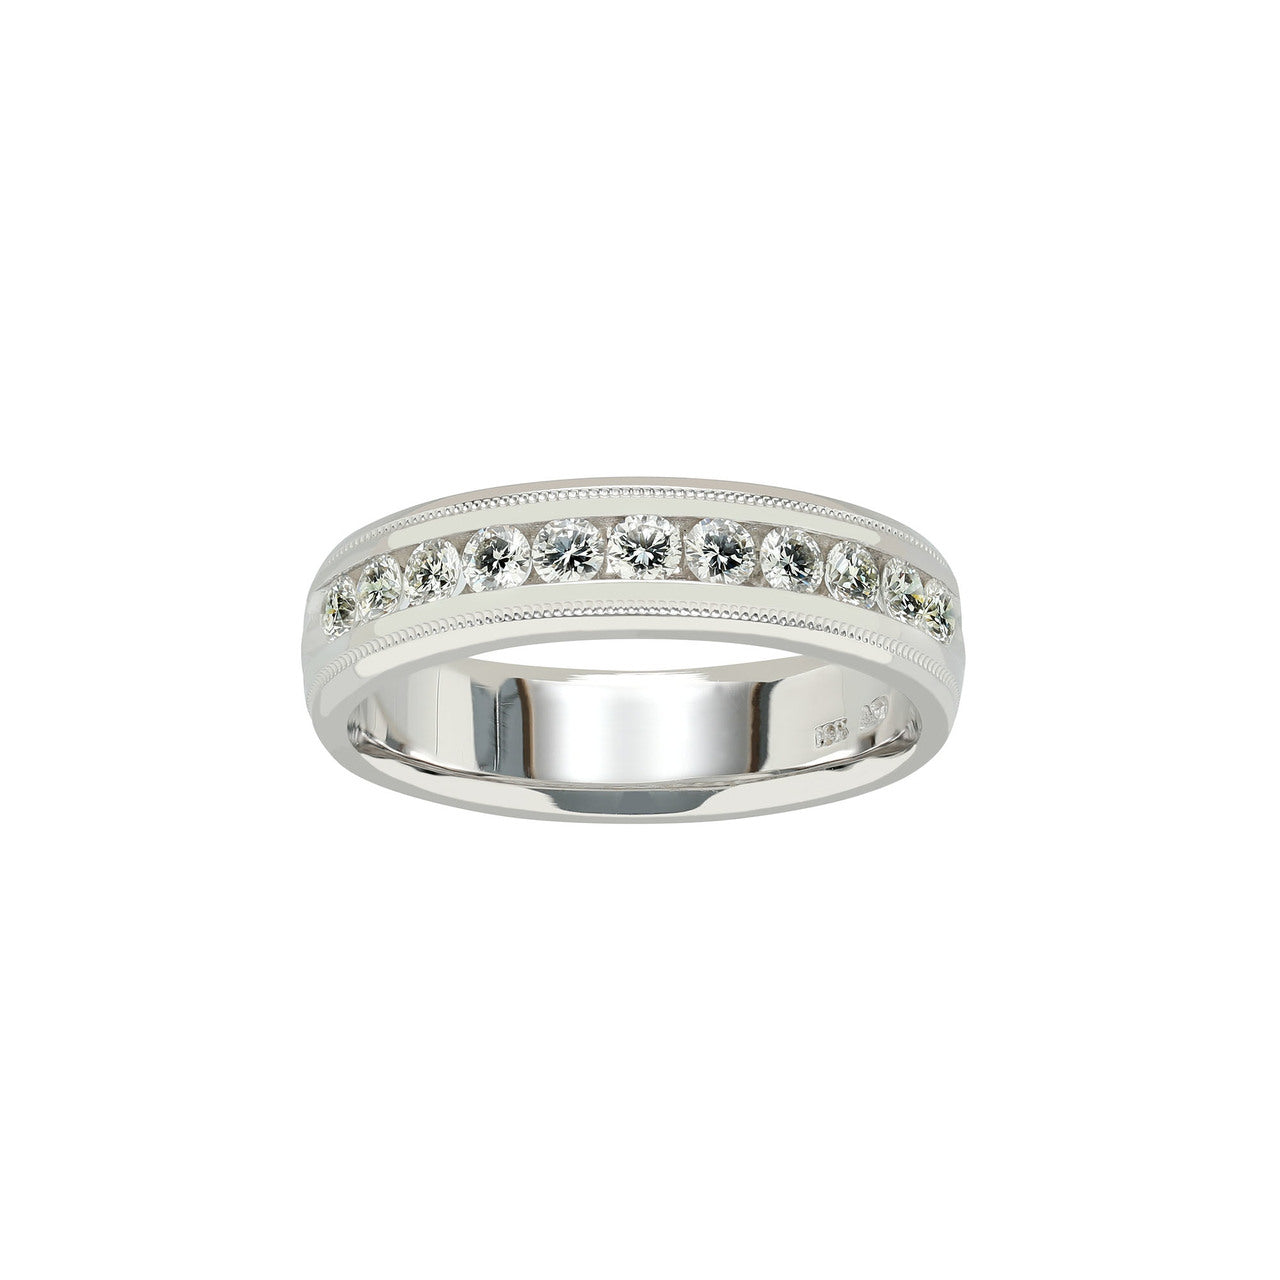 Fink's Men's Groove Design Half-Way Diamond Band